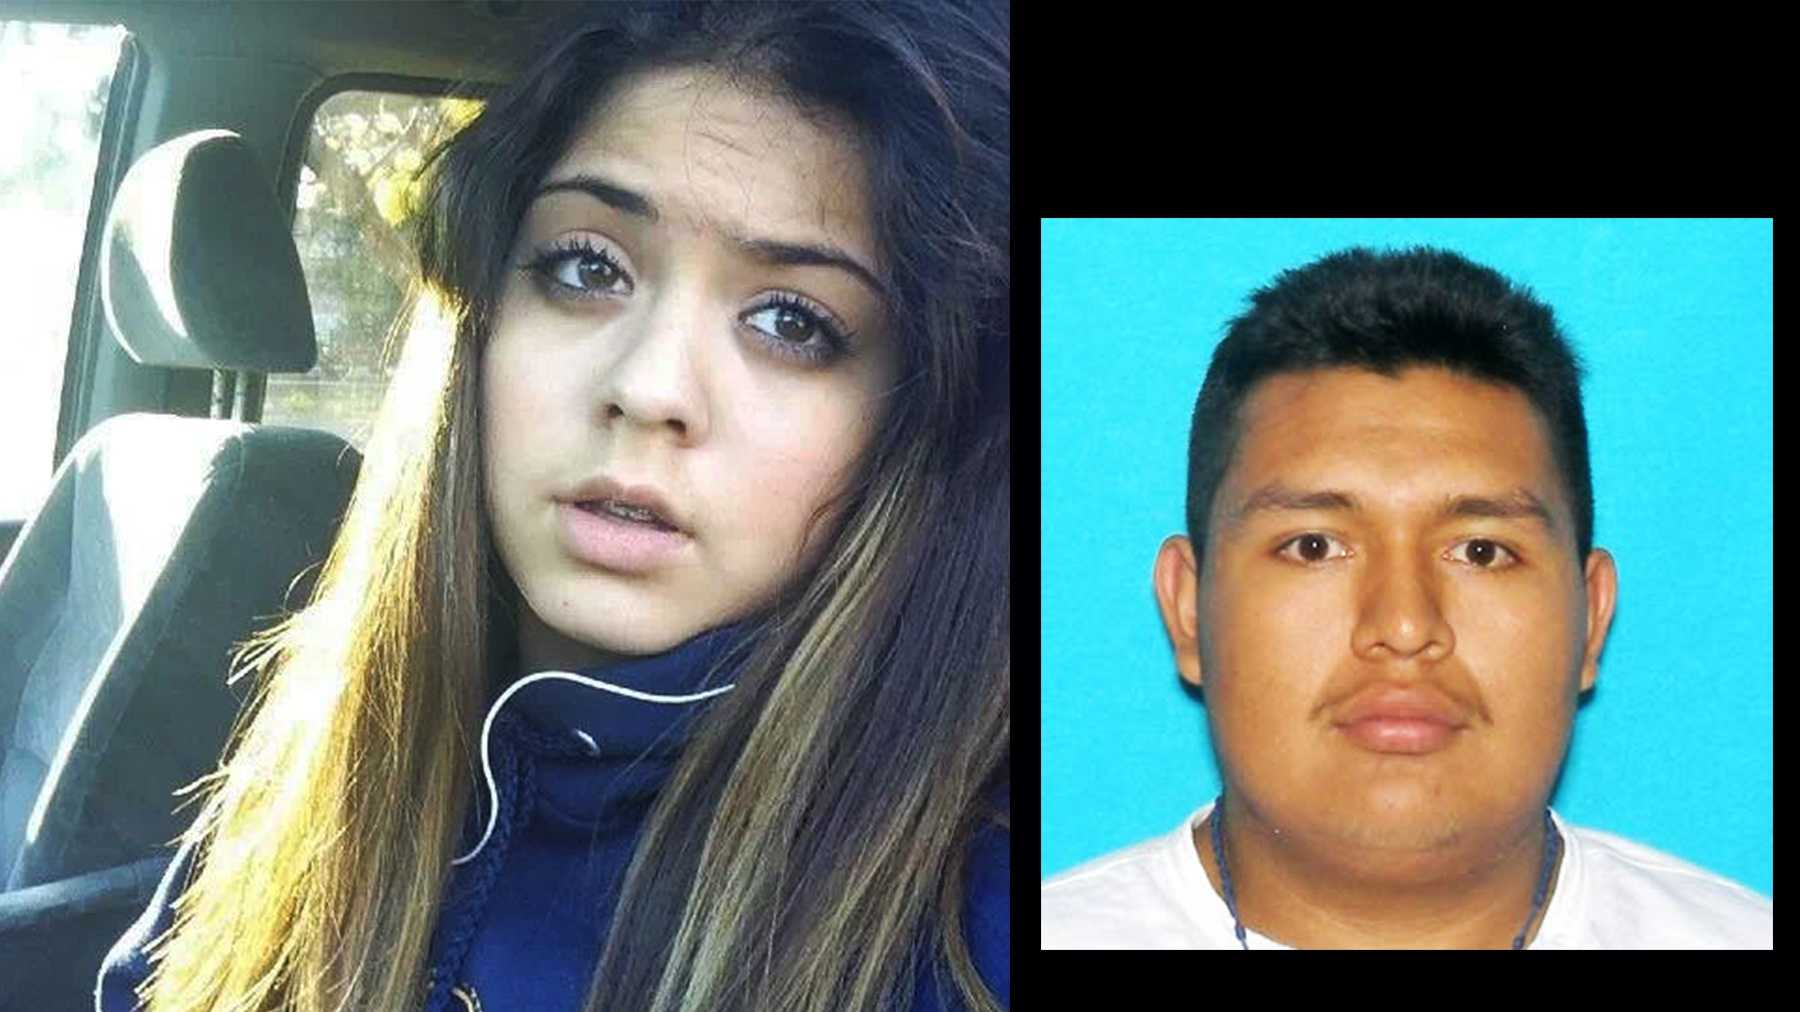 Elizabeth Romero was abducted by Edwardo Fabian Flores Rosales according to the CHP.